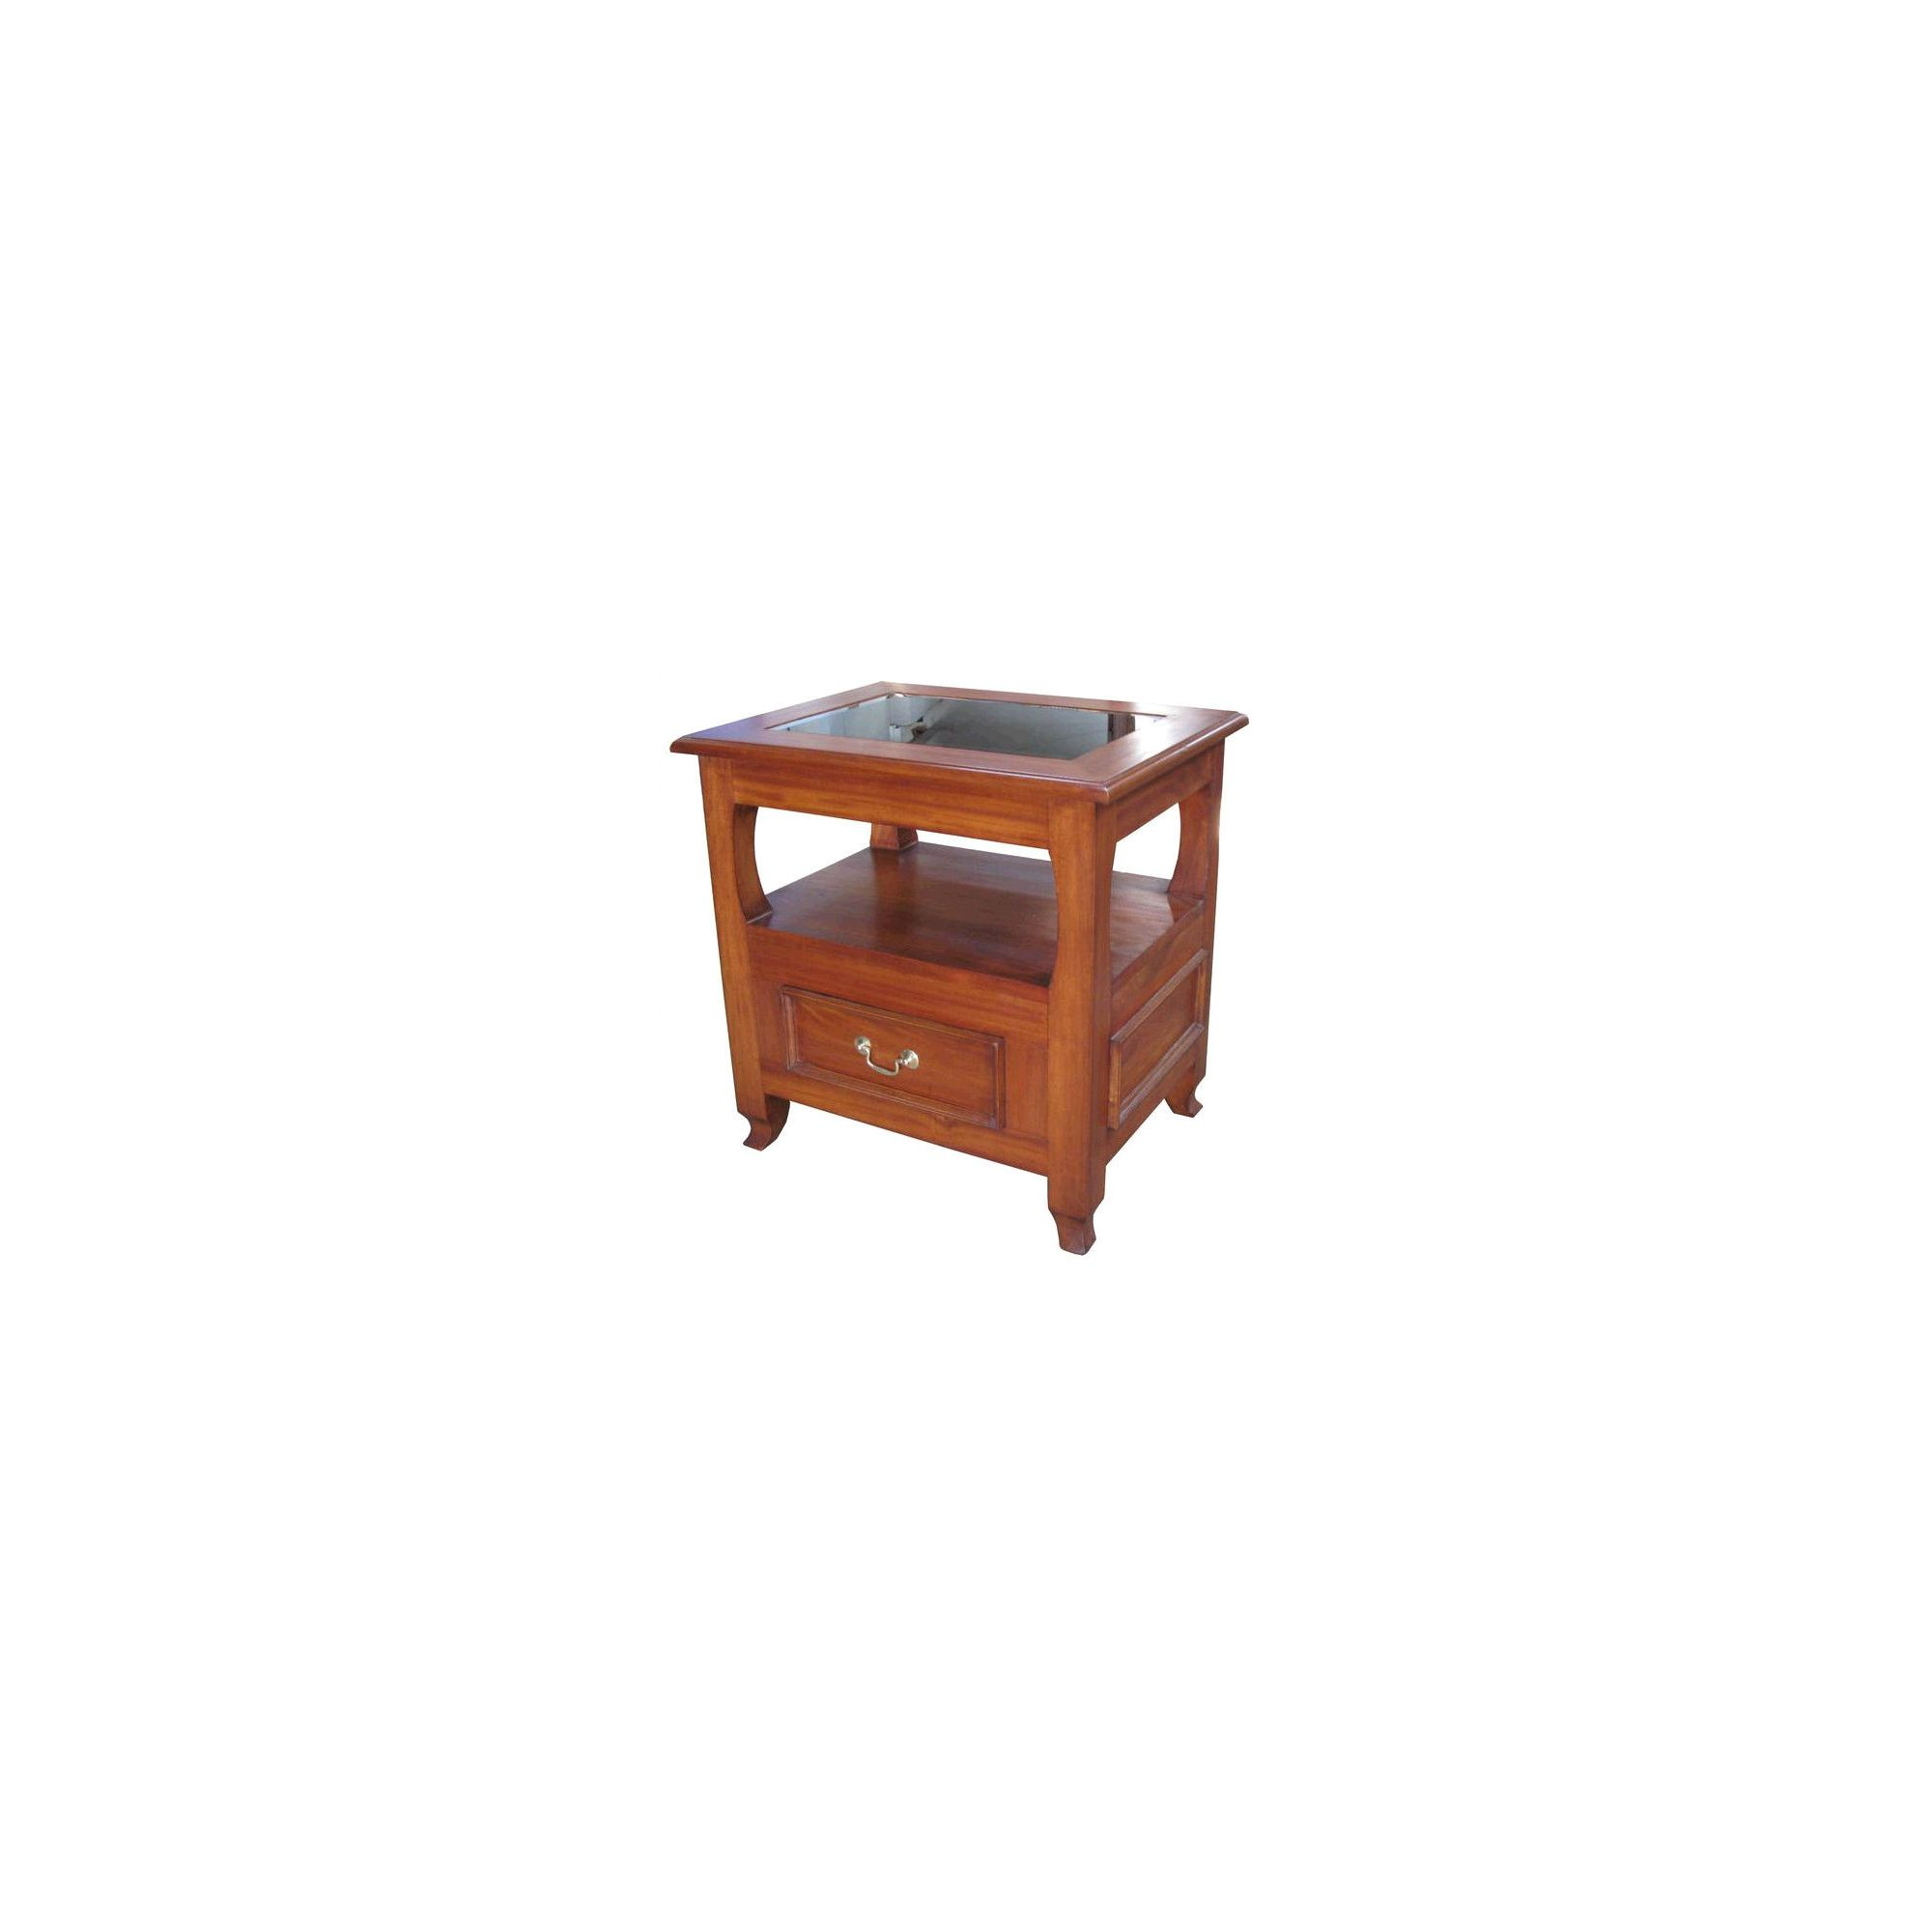 Lock stock and barrel Mahogany Lamp Table in Mahogany at Tesco Direct